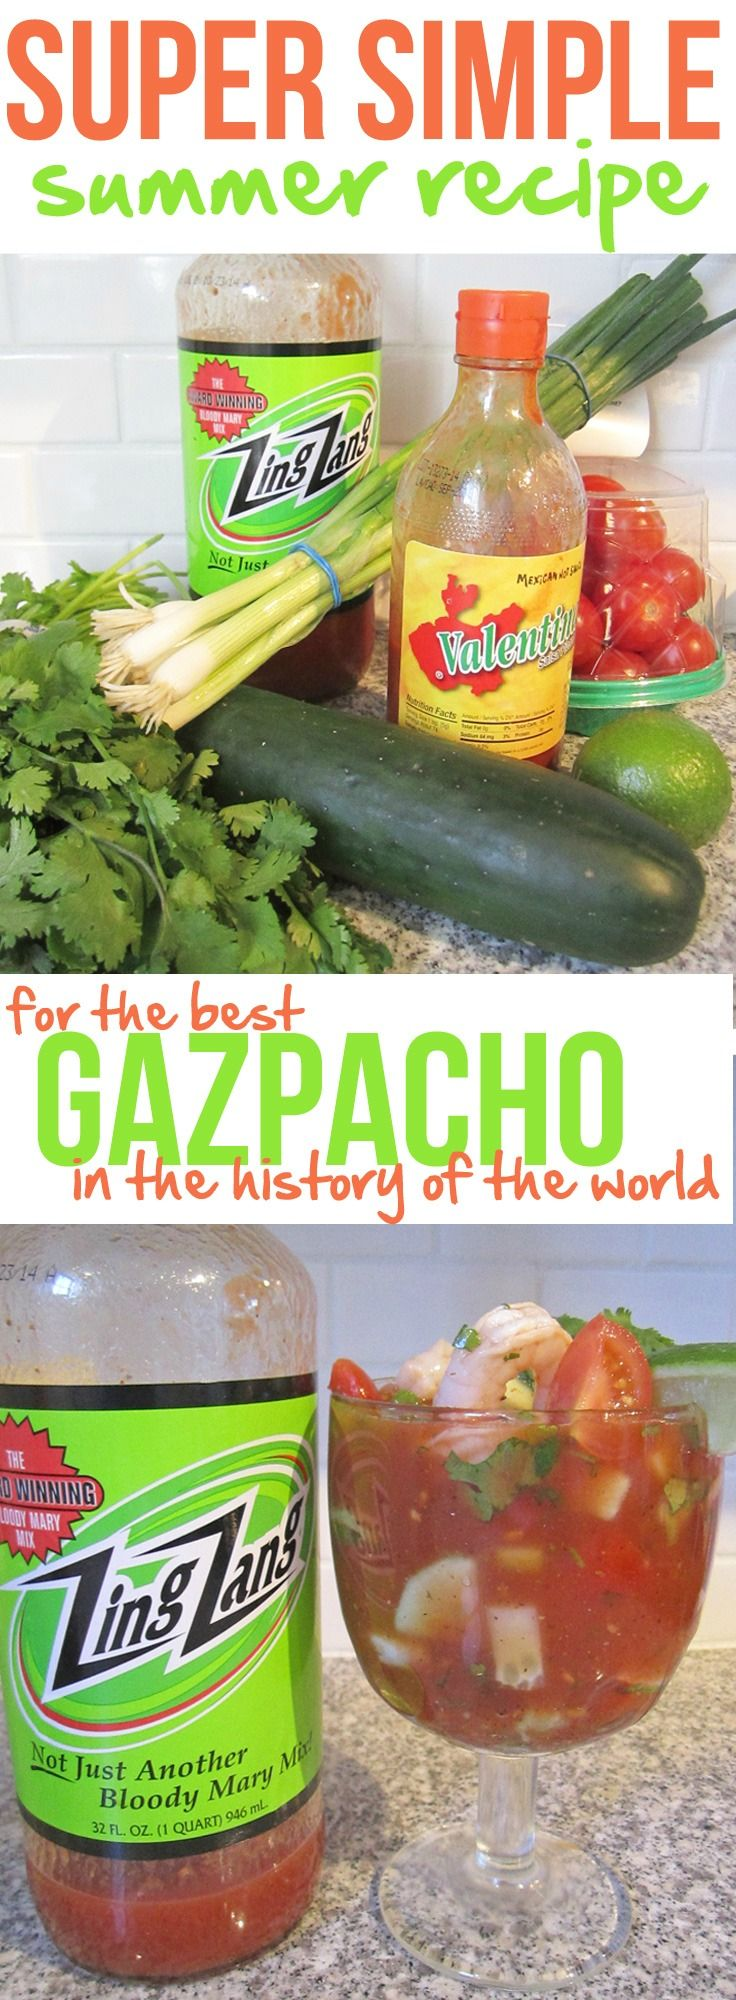 True story. This gazpacho recipe is super simple and really the best thing ever on a hot summer day.